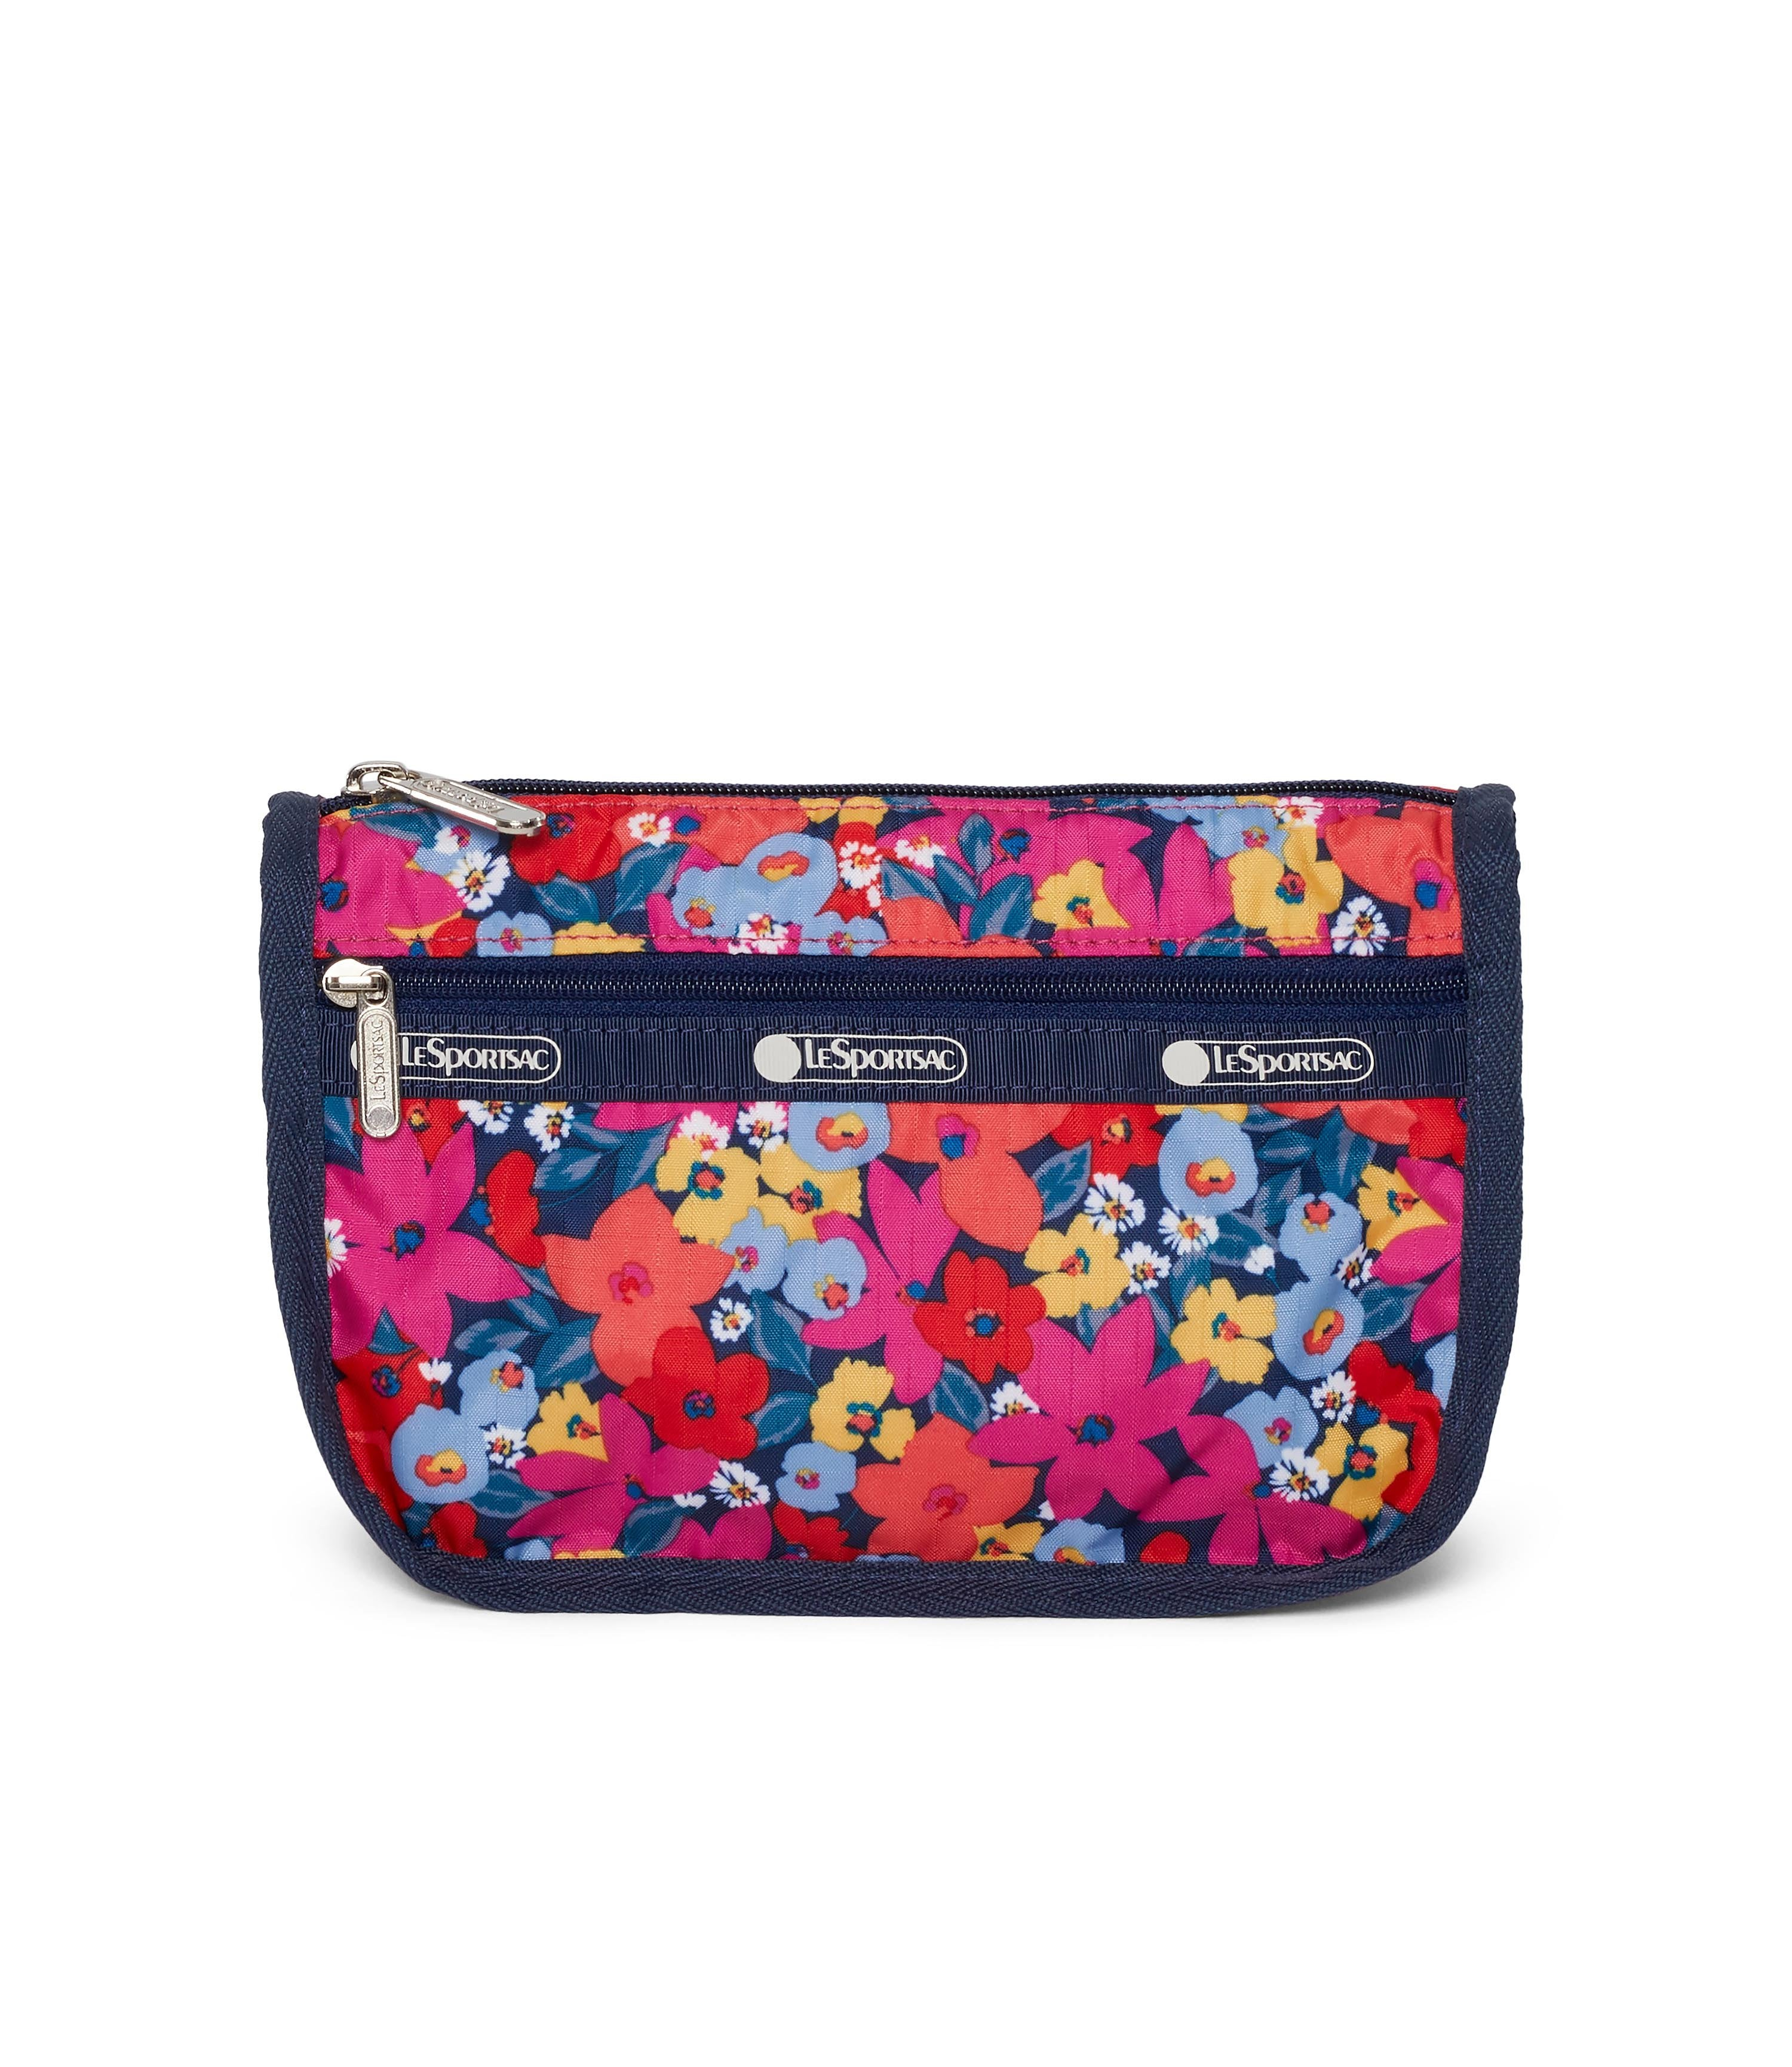 LeSportsac - Travel Cosmetic - Accessories - Bright Isle Floral print